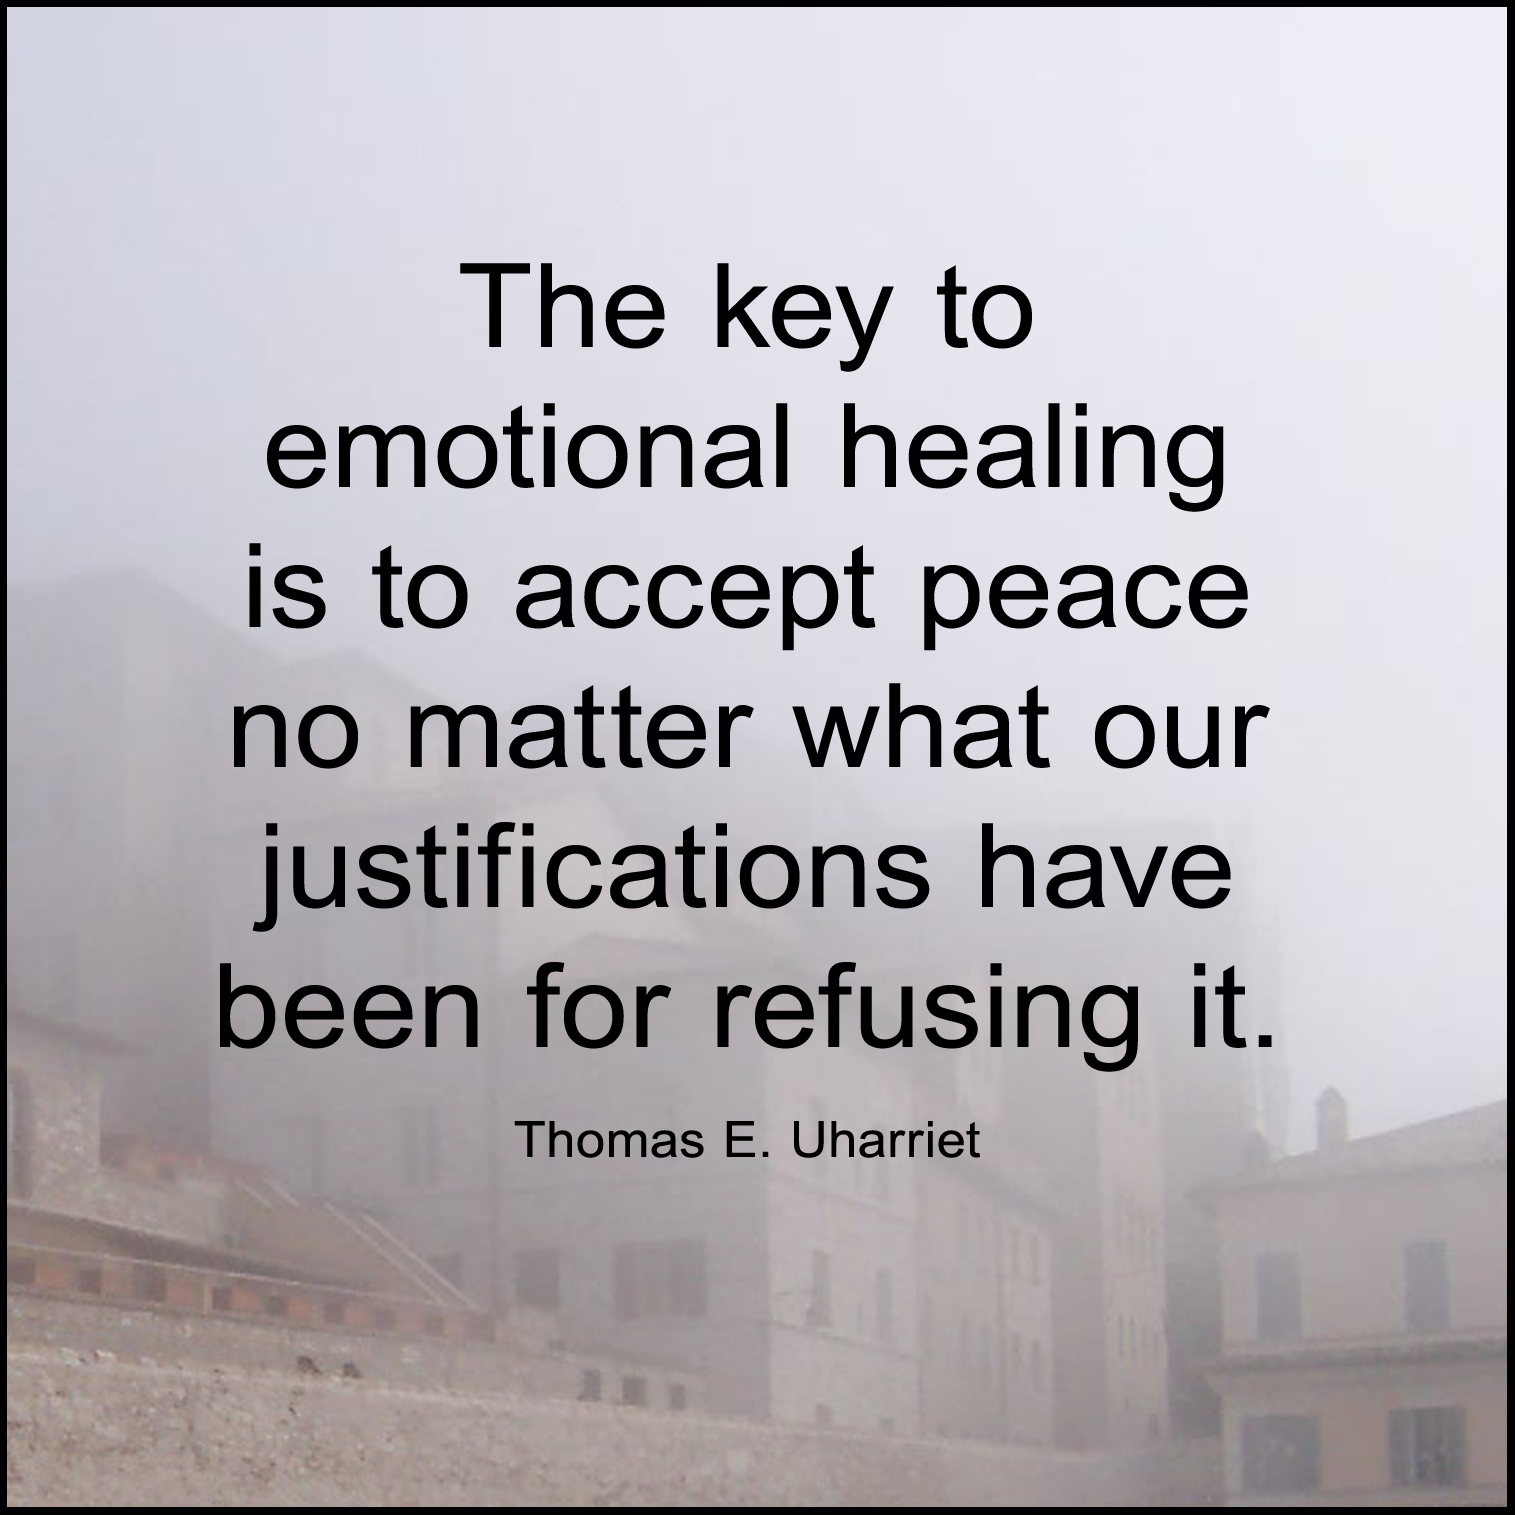 """The key to emotional healing is to accept peace no matter what our justifications have been for refusing it"" (Rev. Thomas E. Uharriet)."